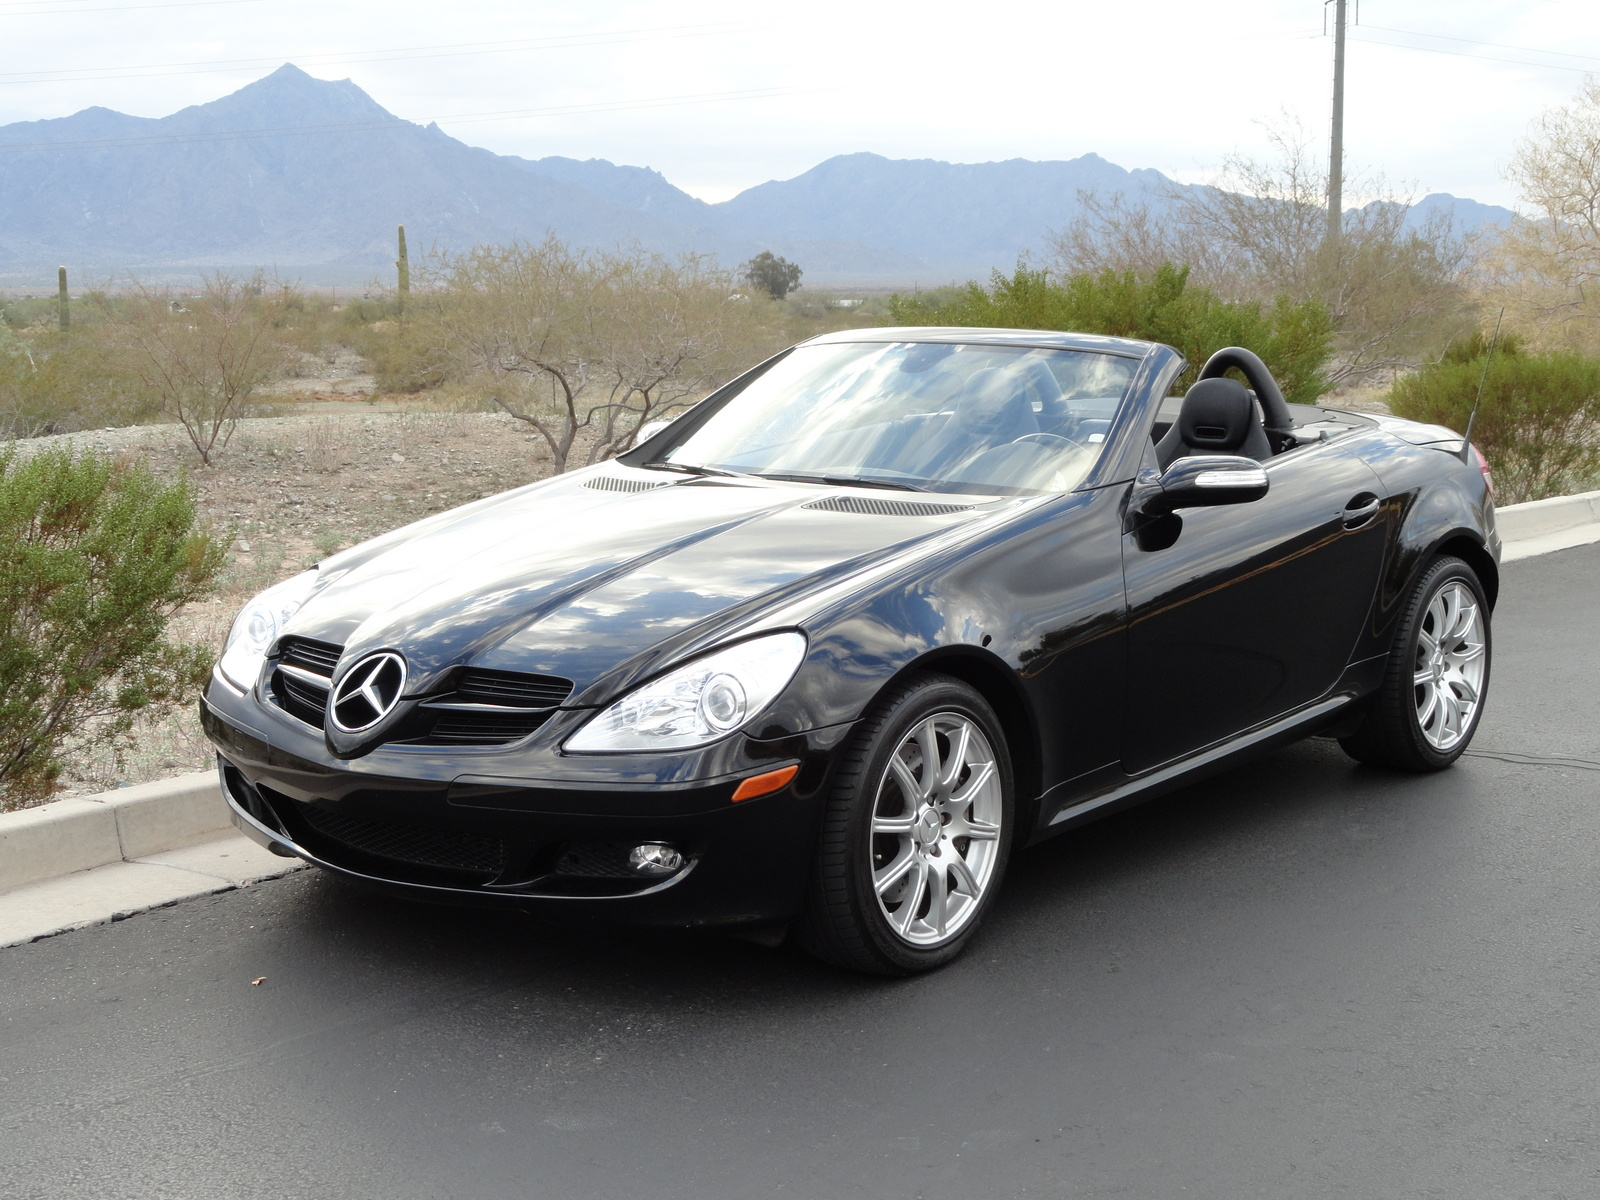 2005 mercedes benz slk class pictures cargurus